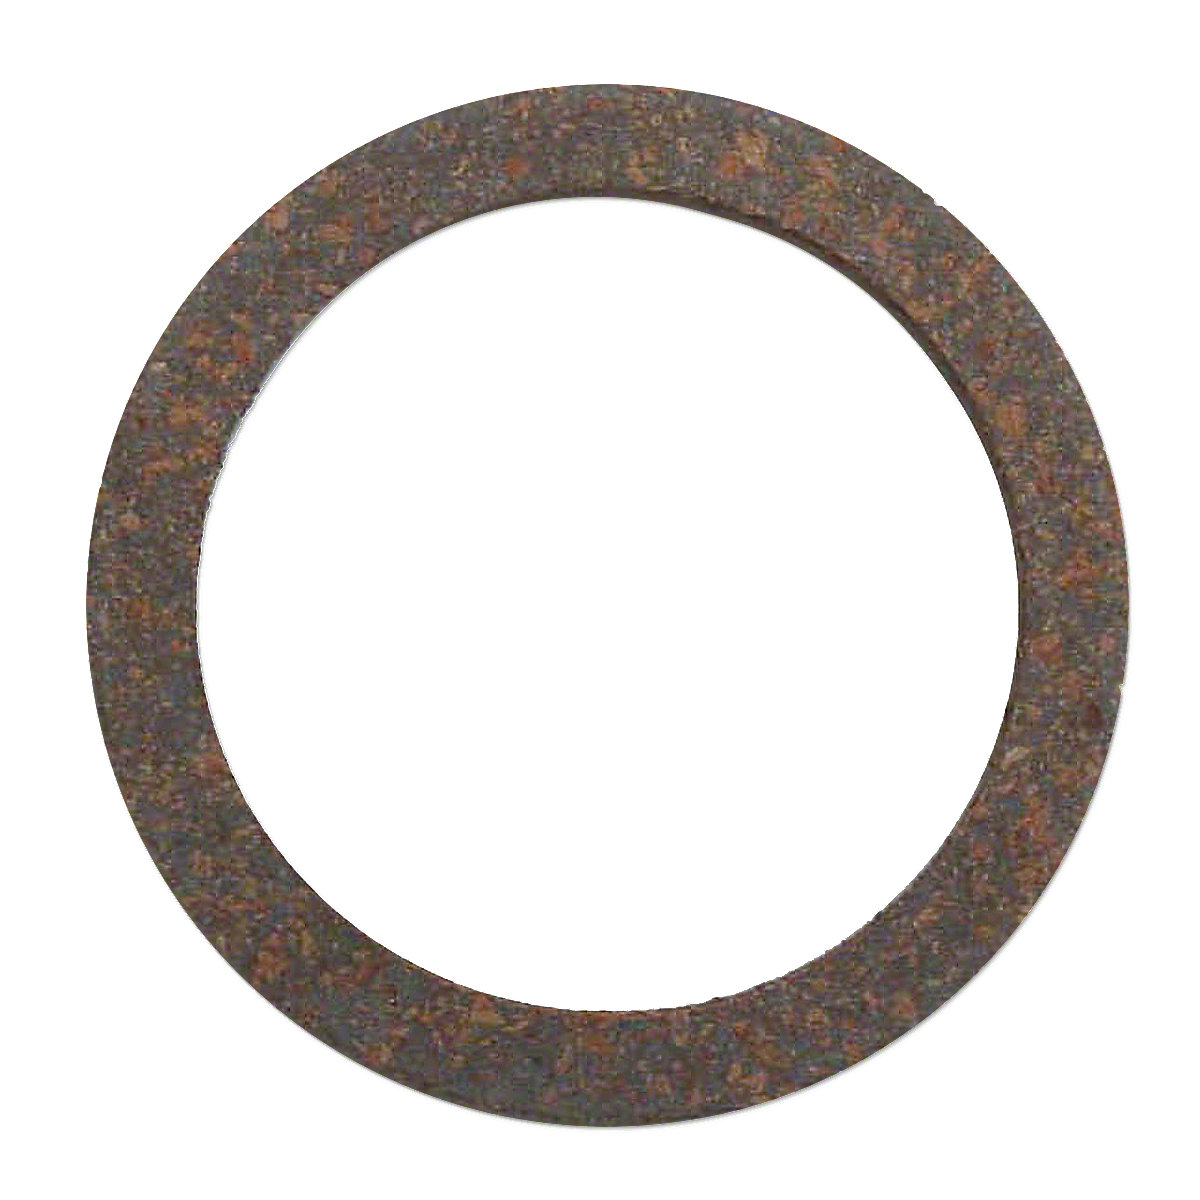 Sediment Bowl Gasket For Massey Ferguson: TO35, 40, TE20, TO20, TO30, TO35, 50, 35, 65, 88, 85, Massey Harris: Pacer 16, Pony, 50.